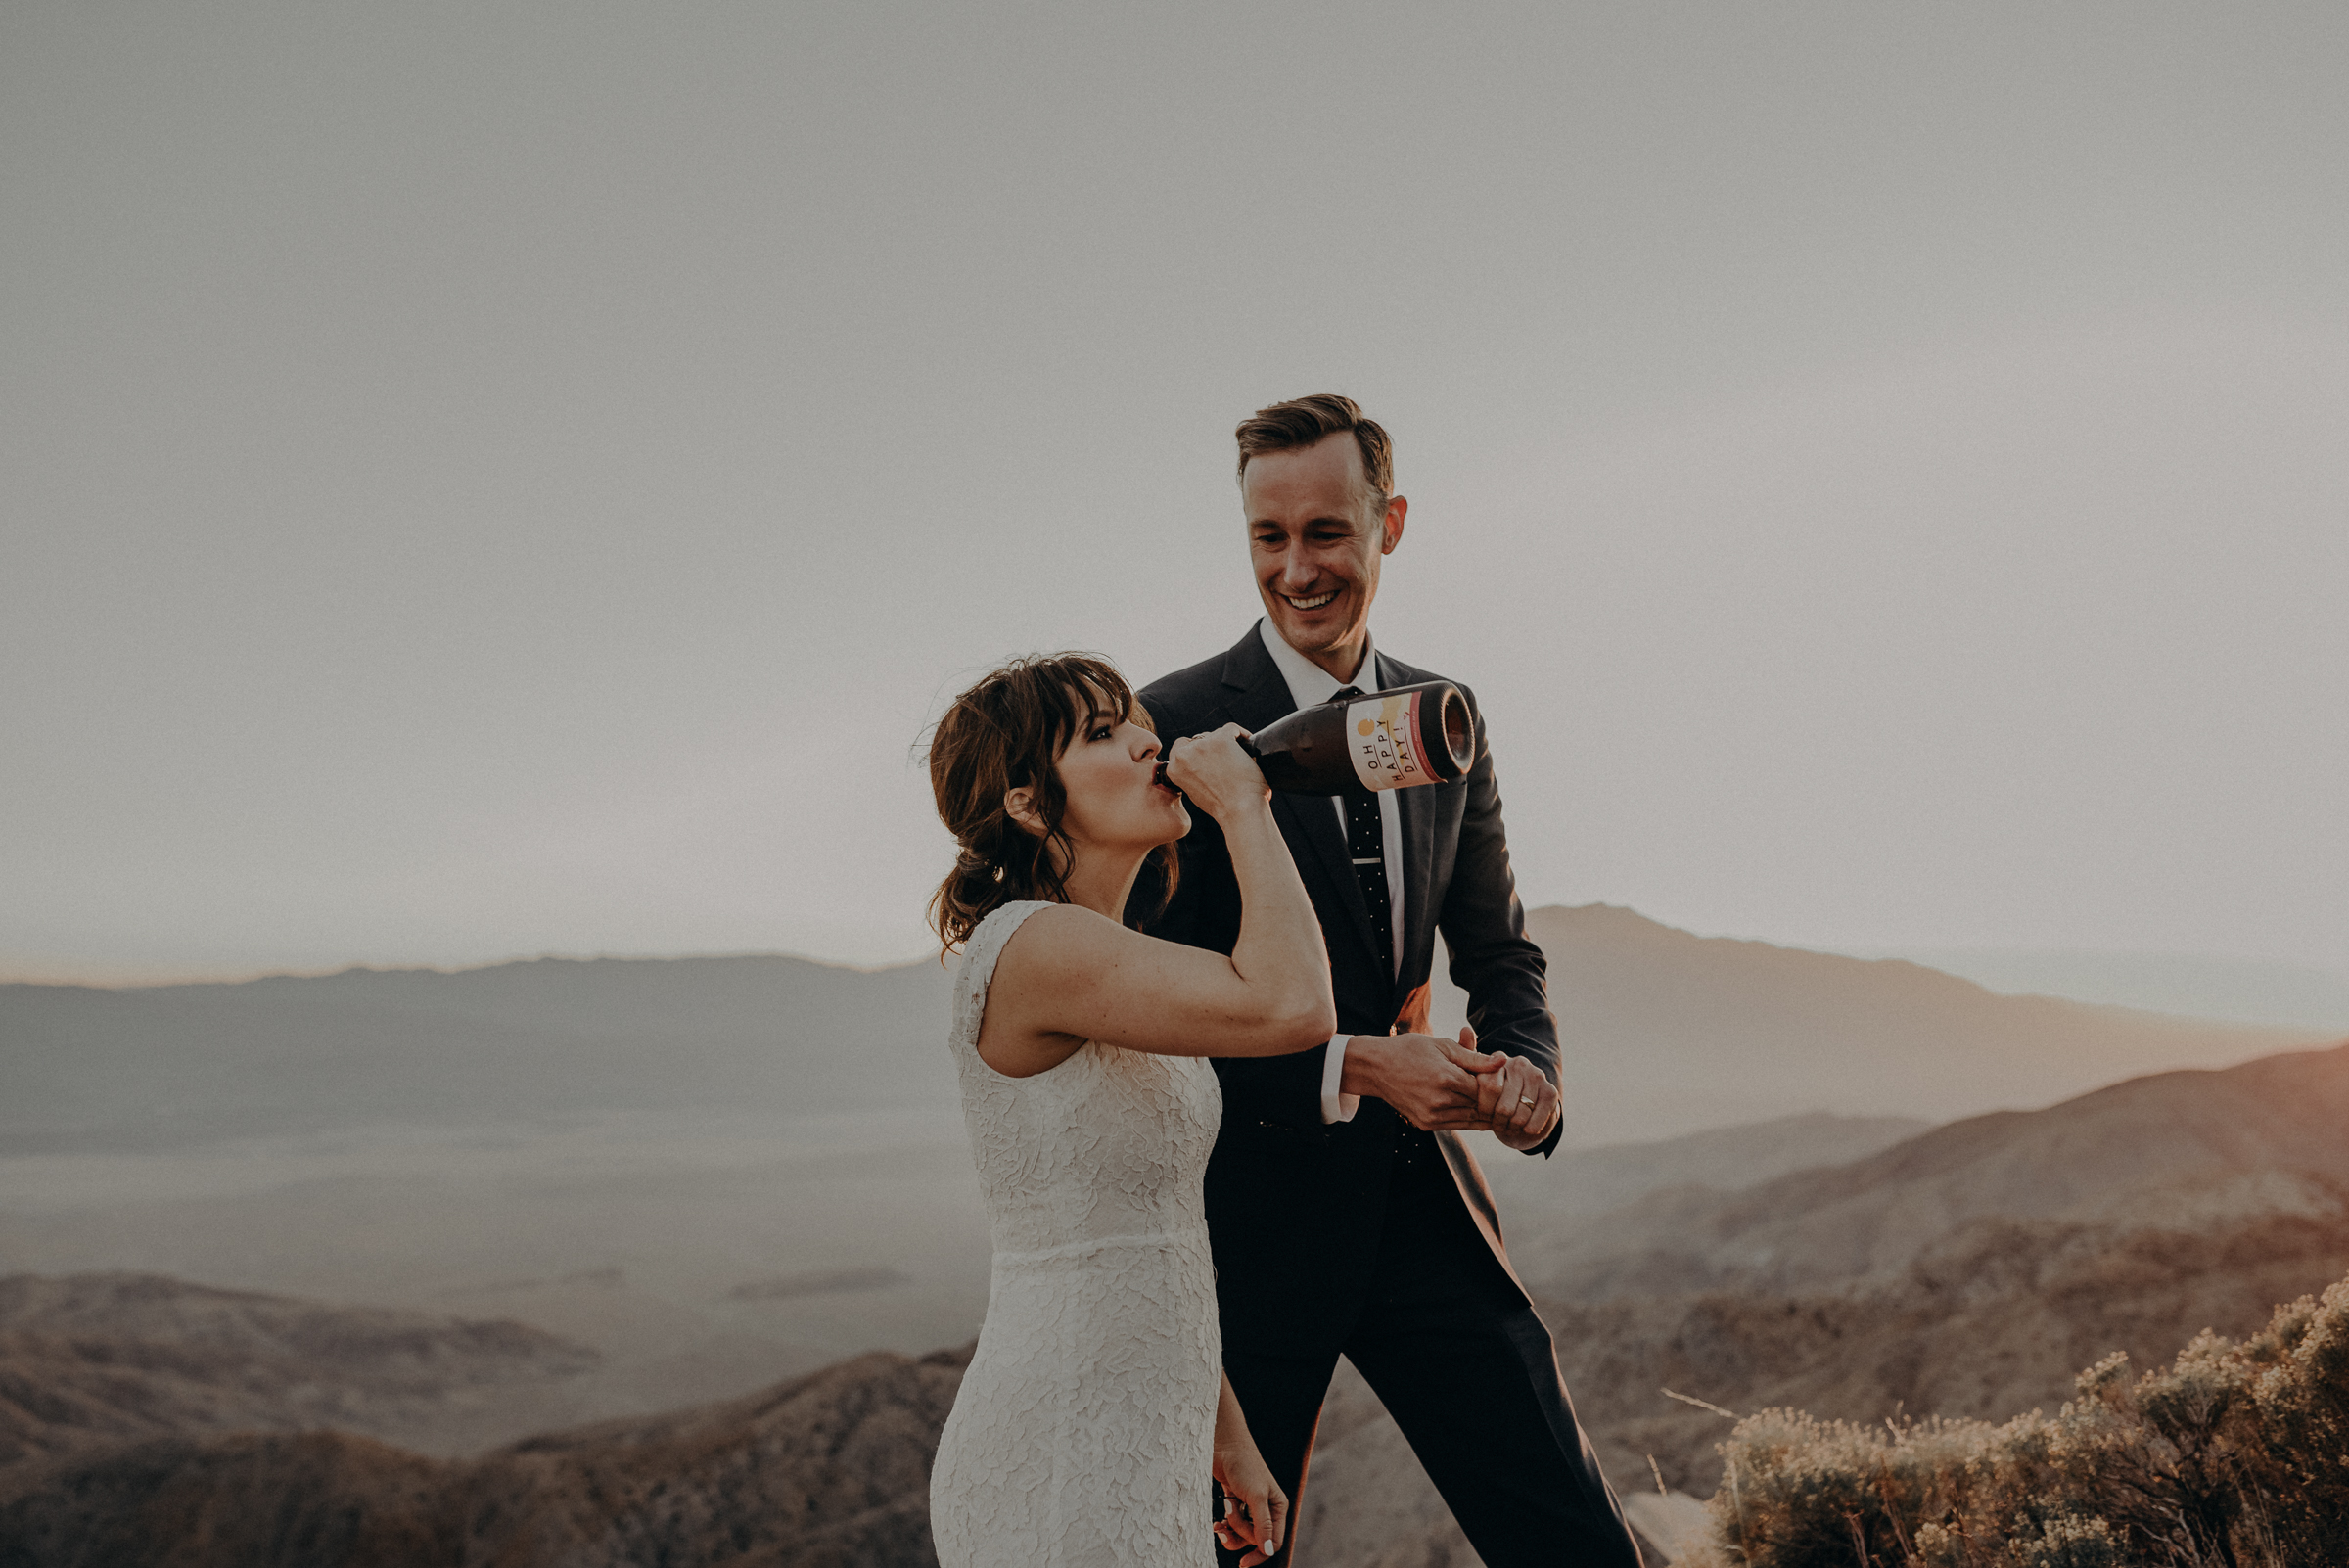 Joshua Tree Elopement - Los Angeles Wedding Photographers - IsaiahAndTaylor.com-118.jpg